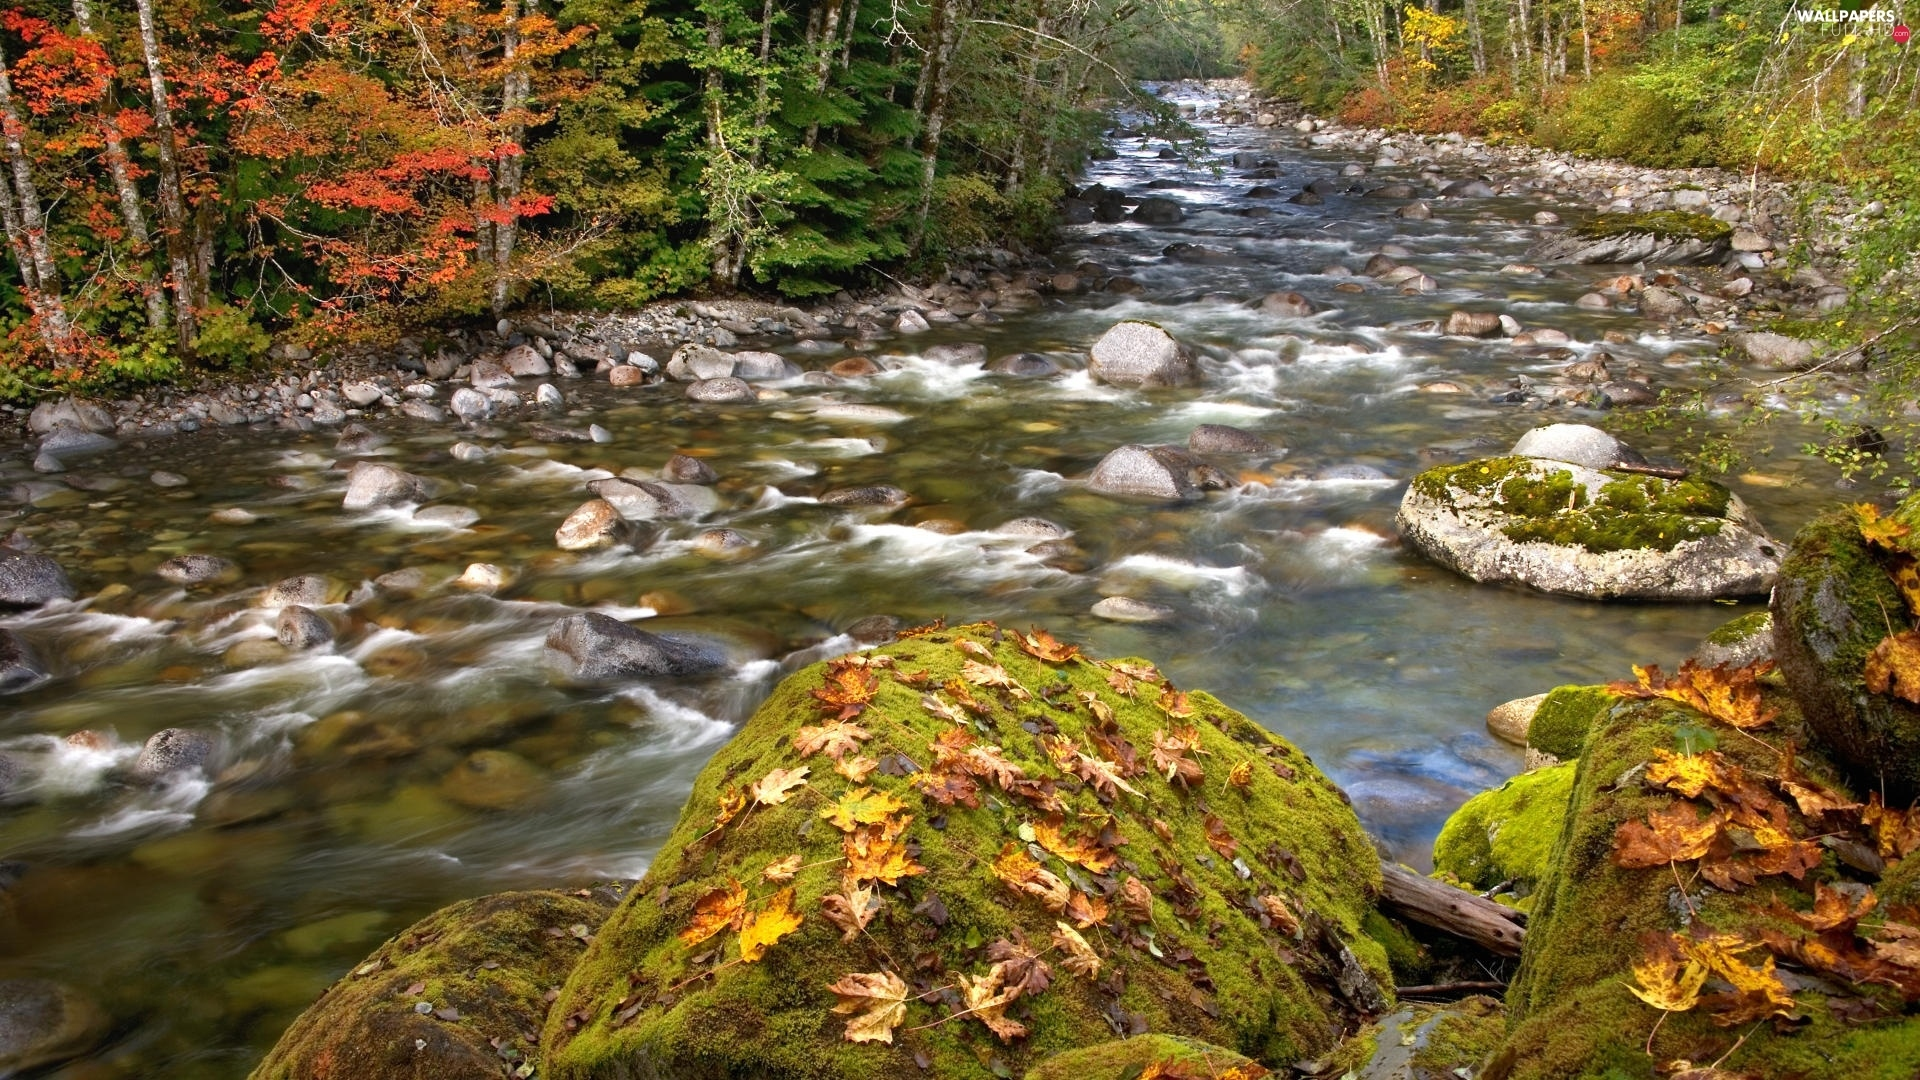 Leaf, mossy, stream, autumn, boulders, forest, stony